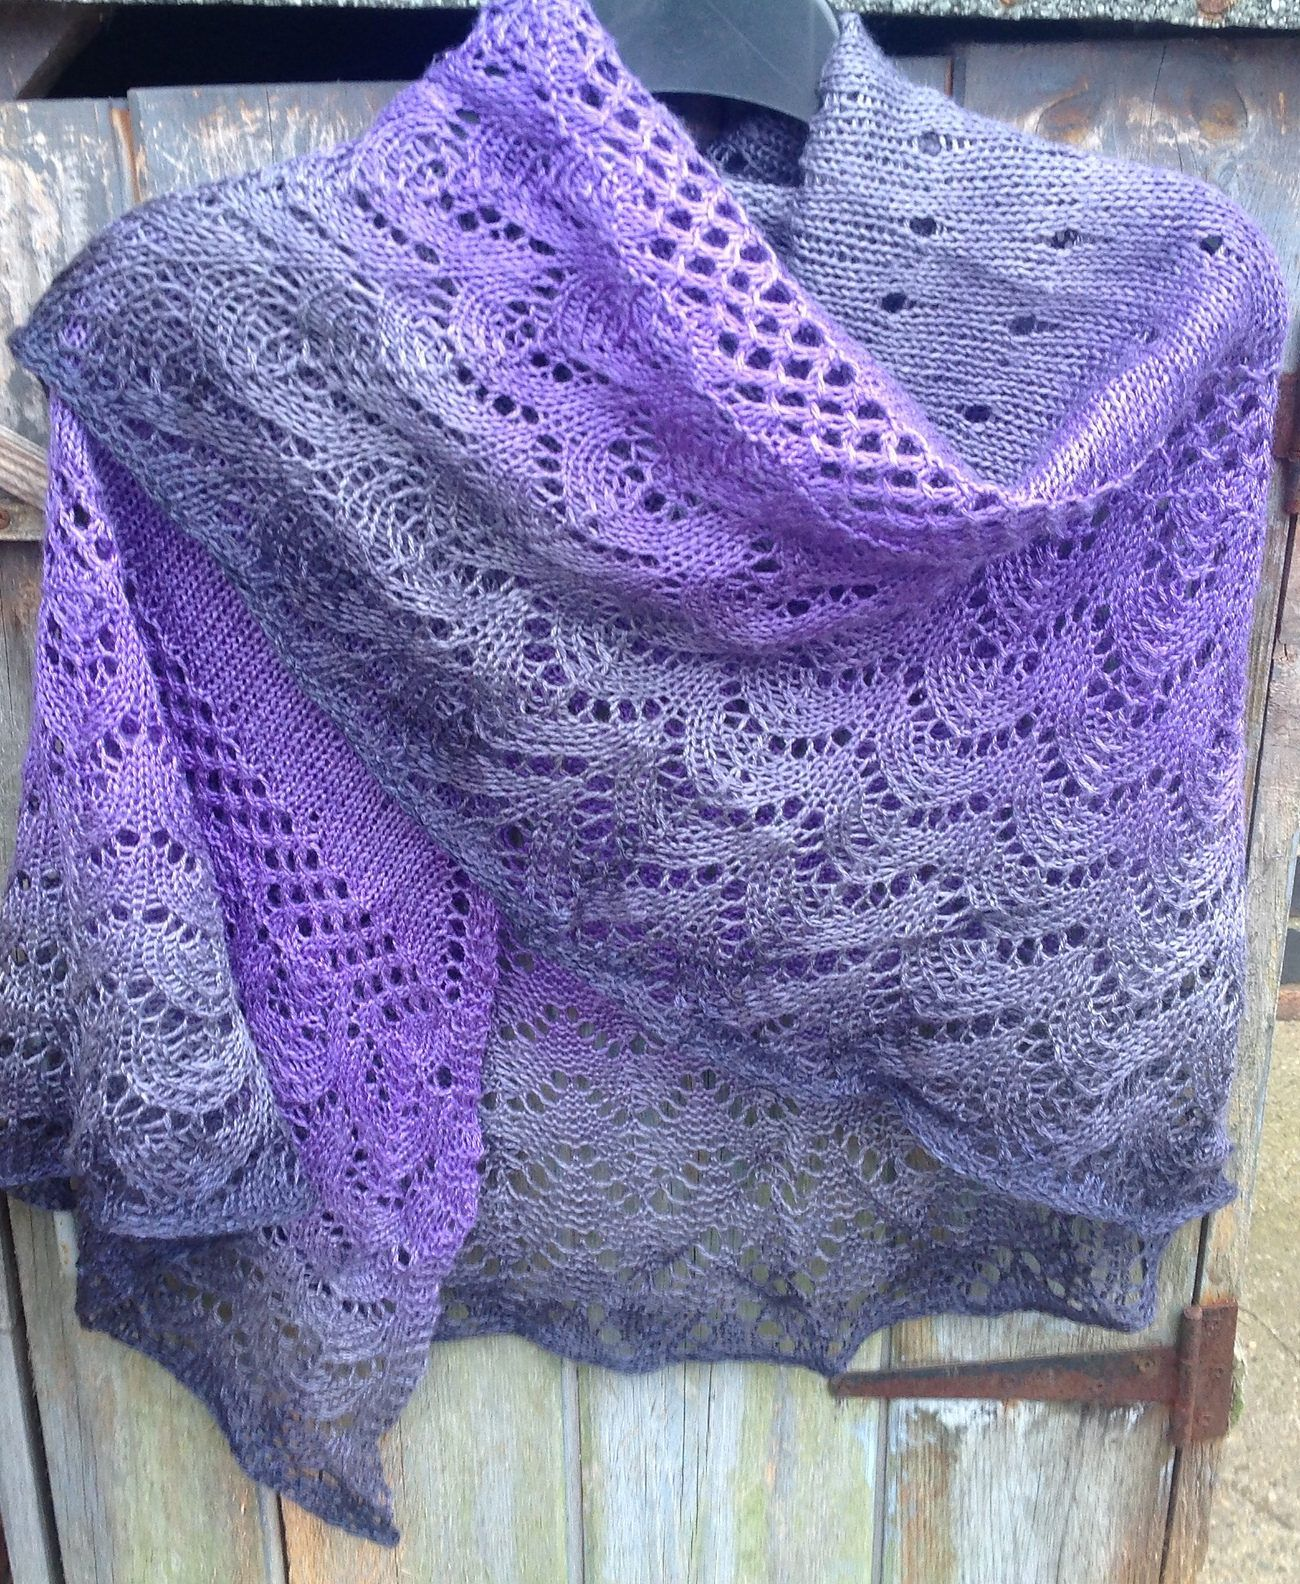 Knitting Patterns For Lace Yarn : Free Knitting Pattern for One Skein Kindness Shawl - 3 sections of different ...